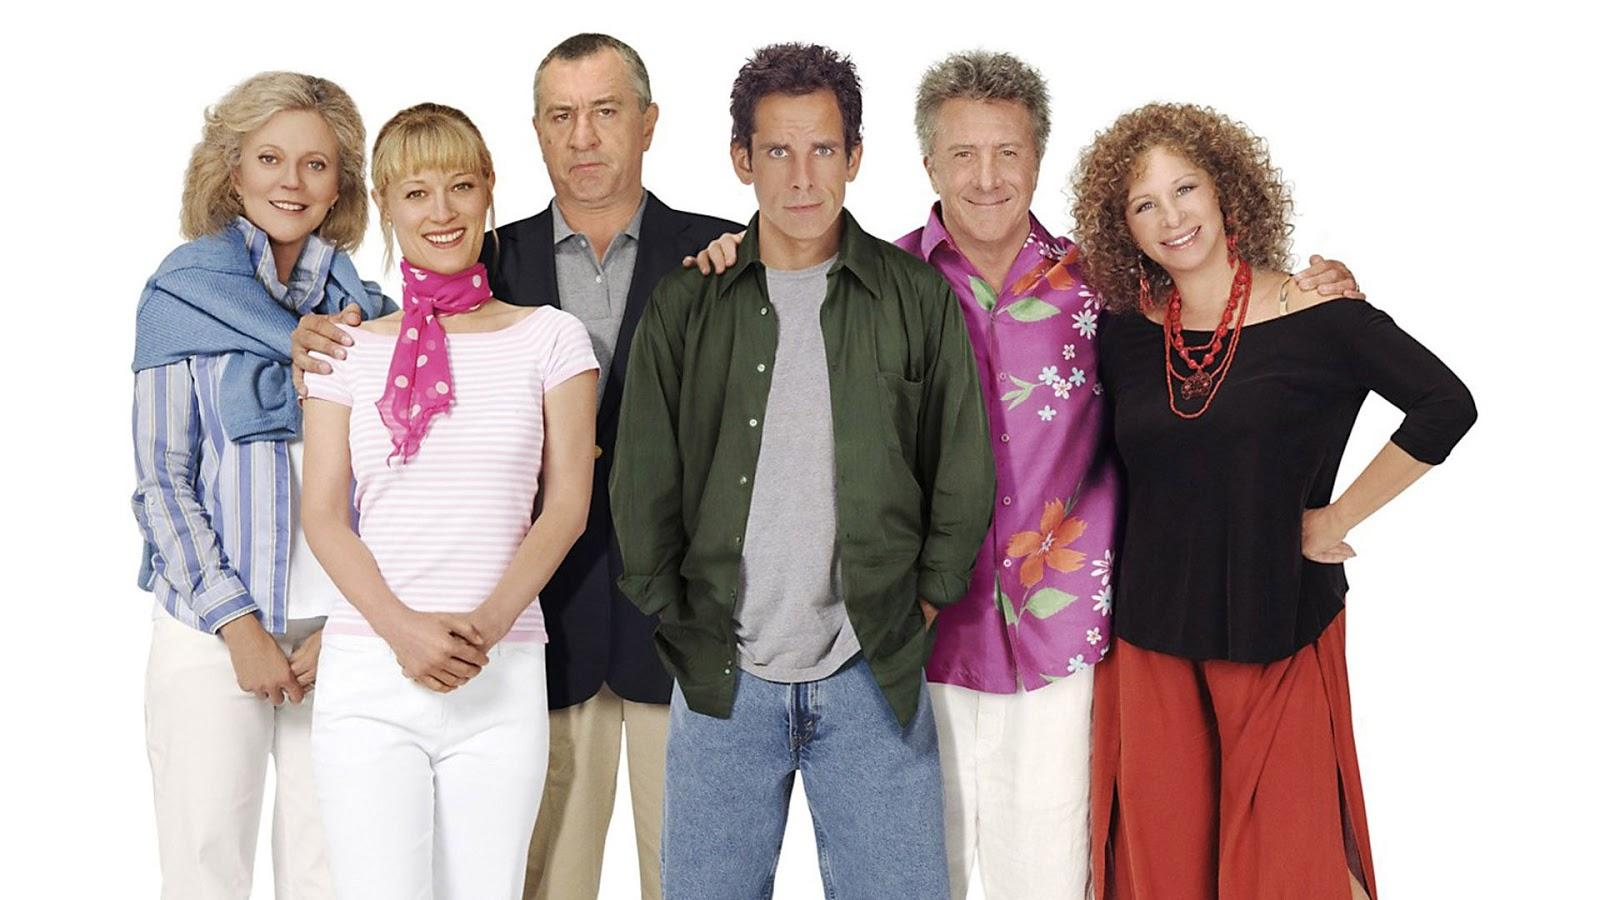 C:\Users\user\Desktop\Reacho\pics\meet-the-fockers.jpg